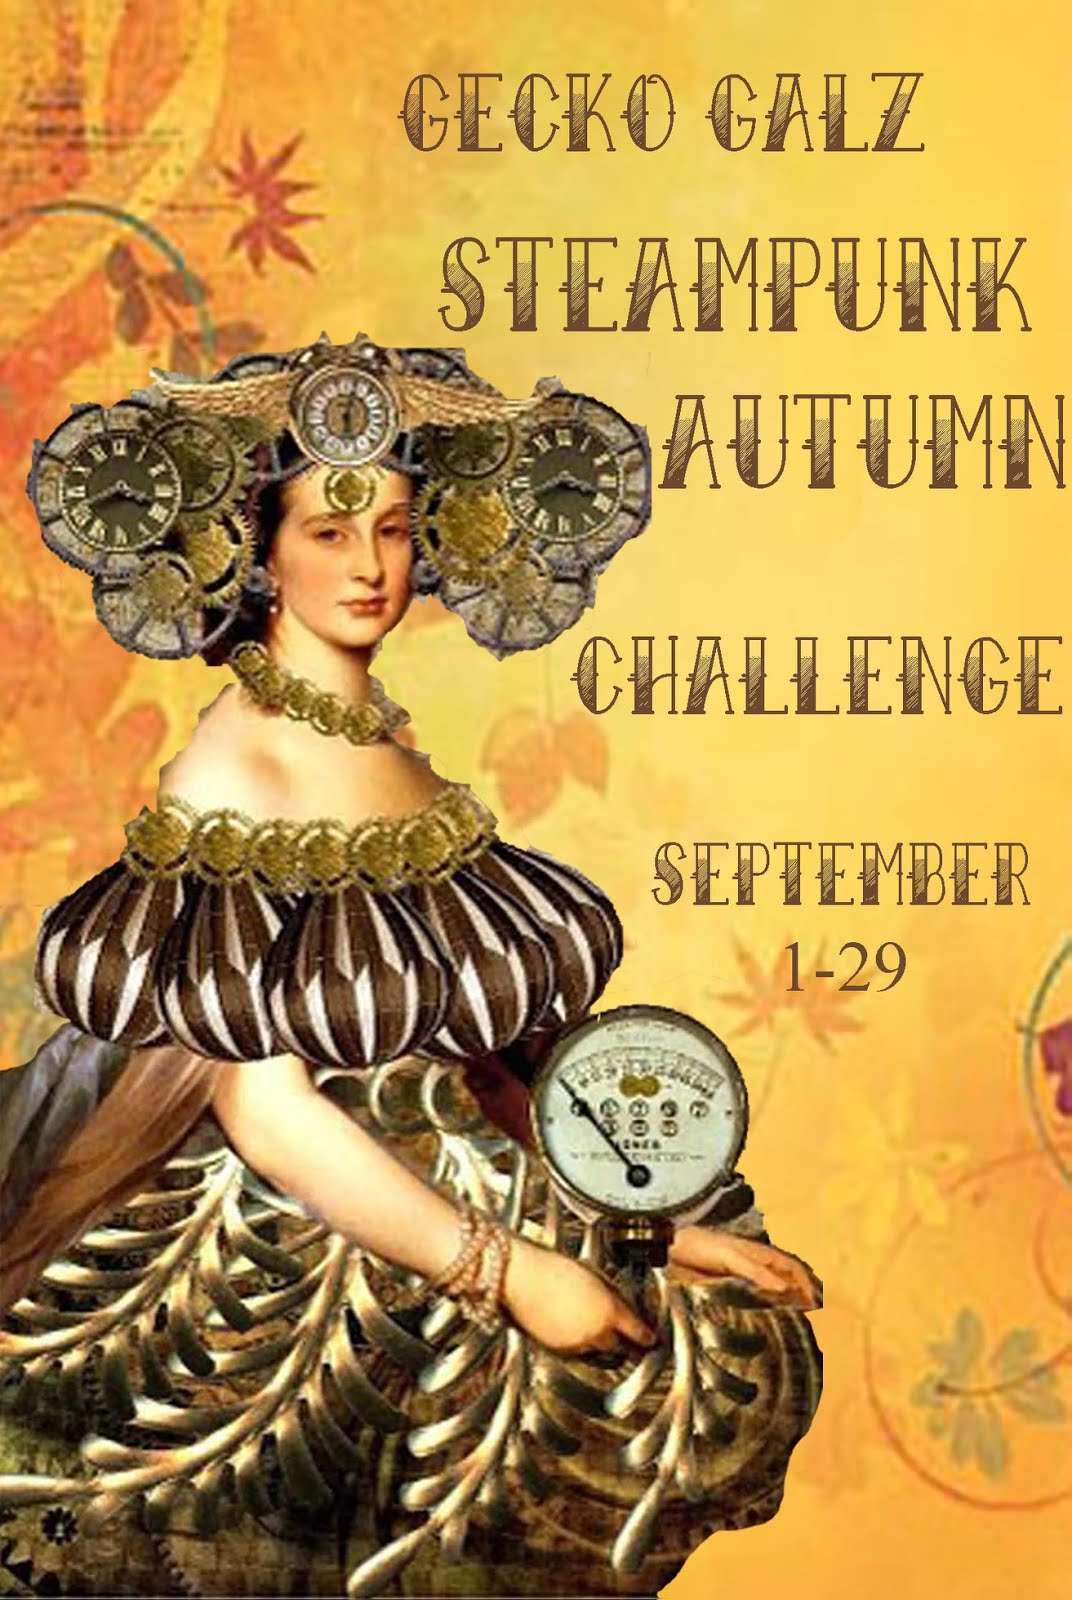 Steampunk Autumn